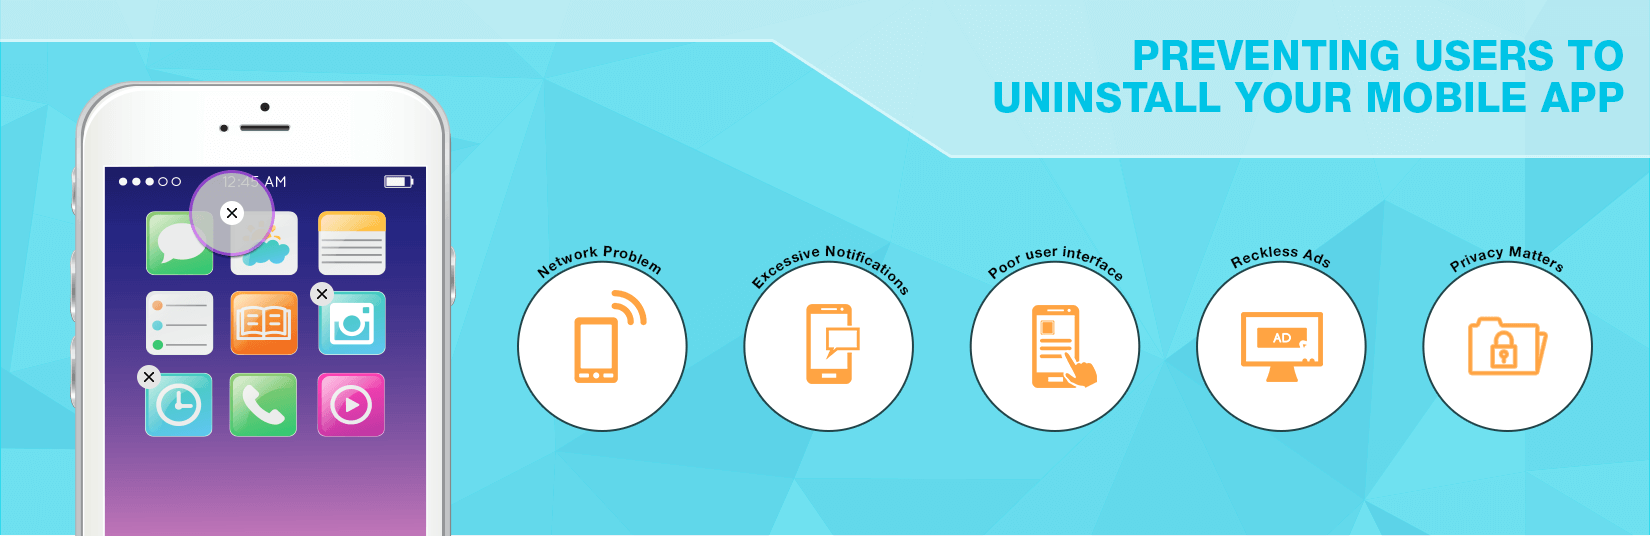 Strategies and tips for preventing users to uninstall your mobile app.